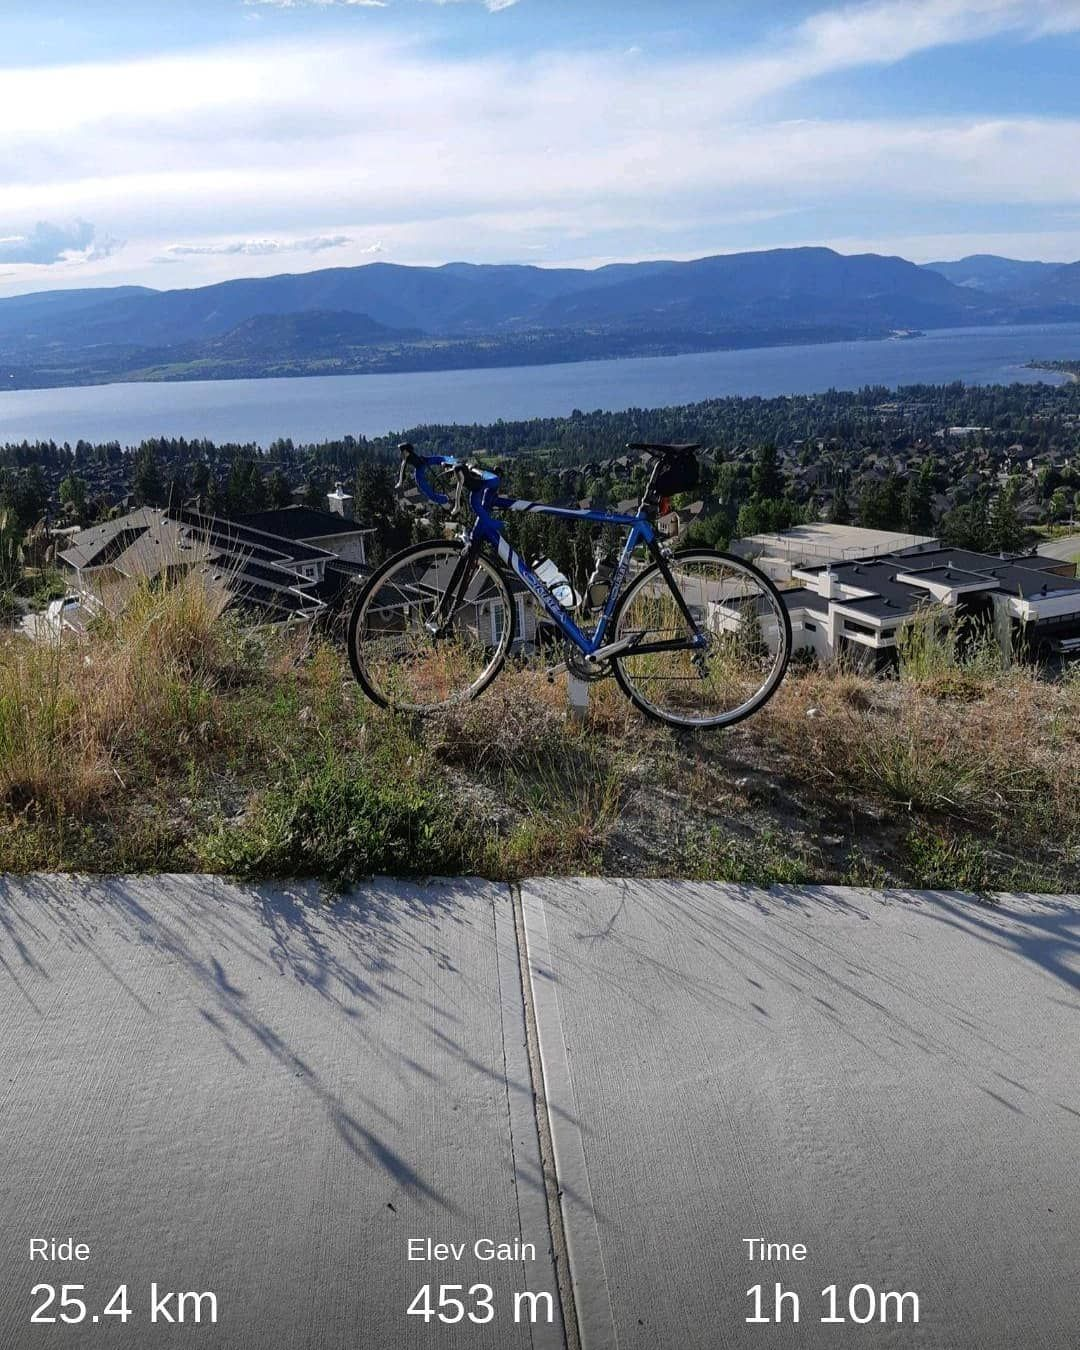 Took the scenic route to break in my new shoes and pedals    #gcninspiration     #kelowna     #cycle...